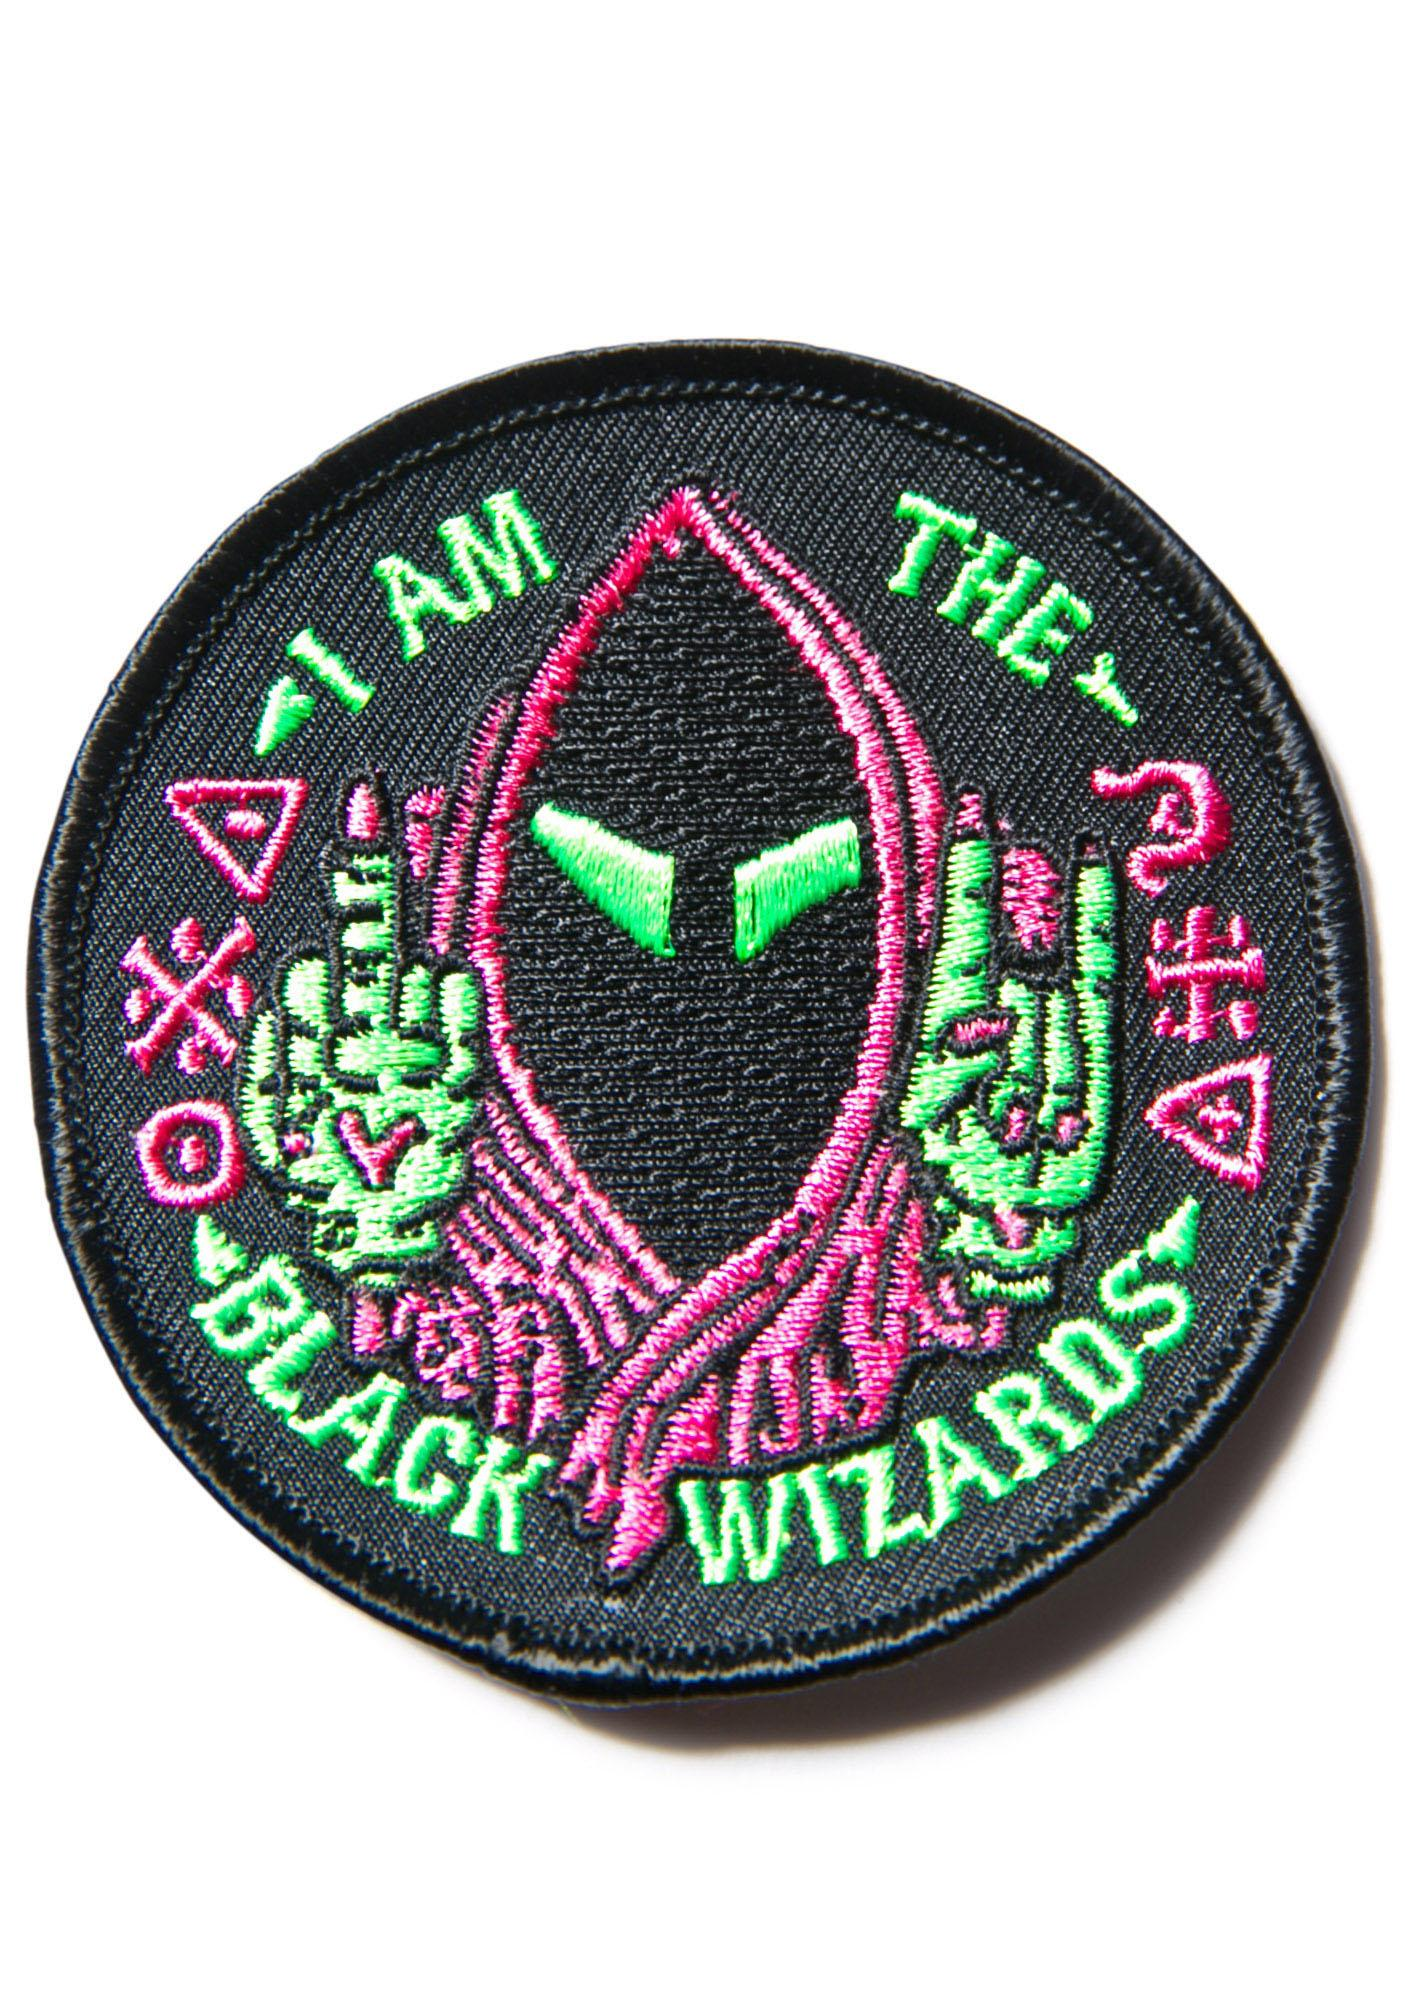 I Am the Black Wizards Patch